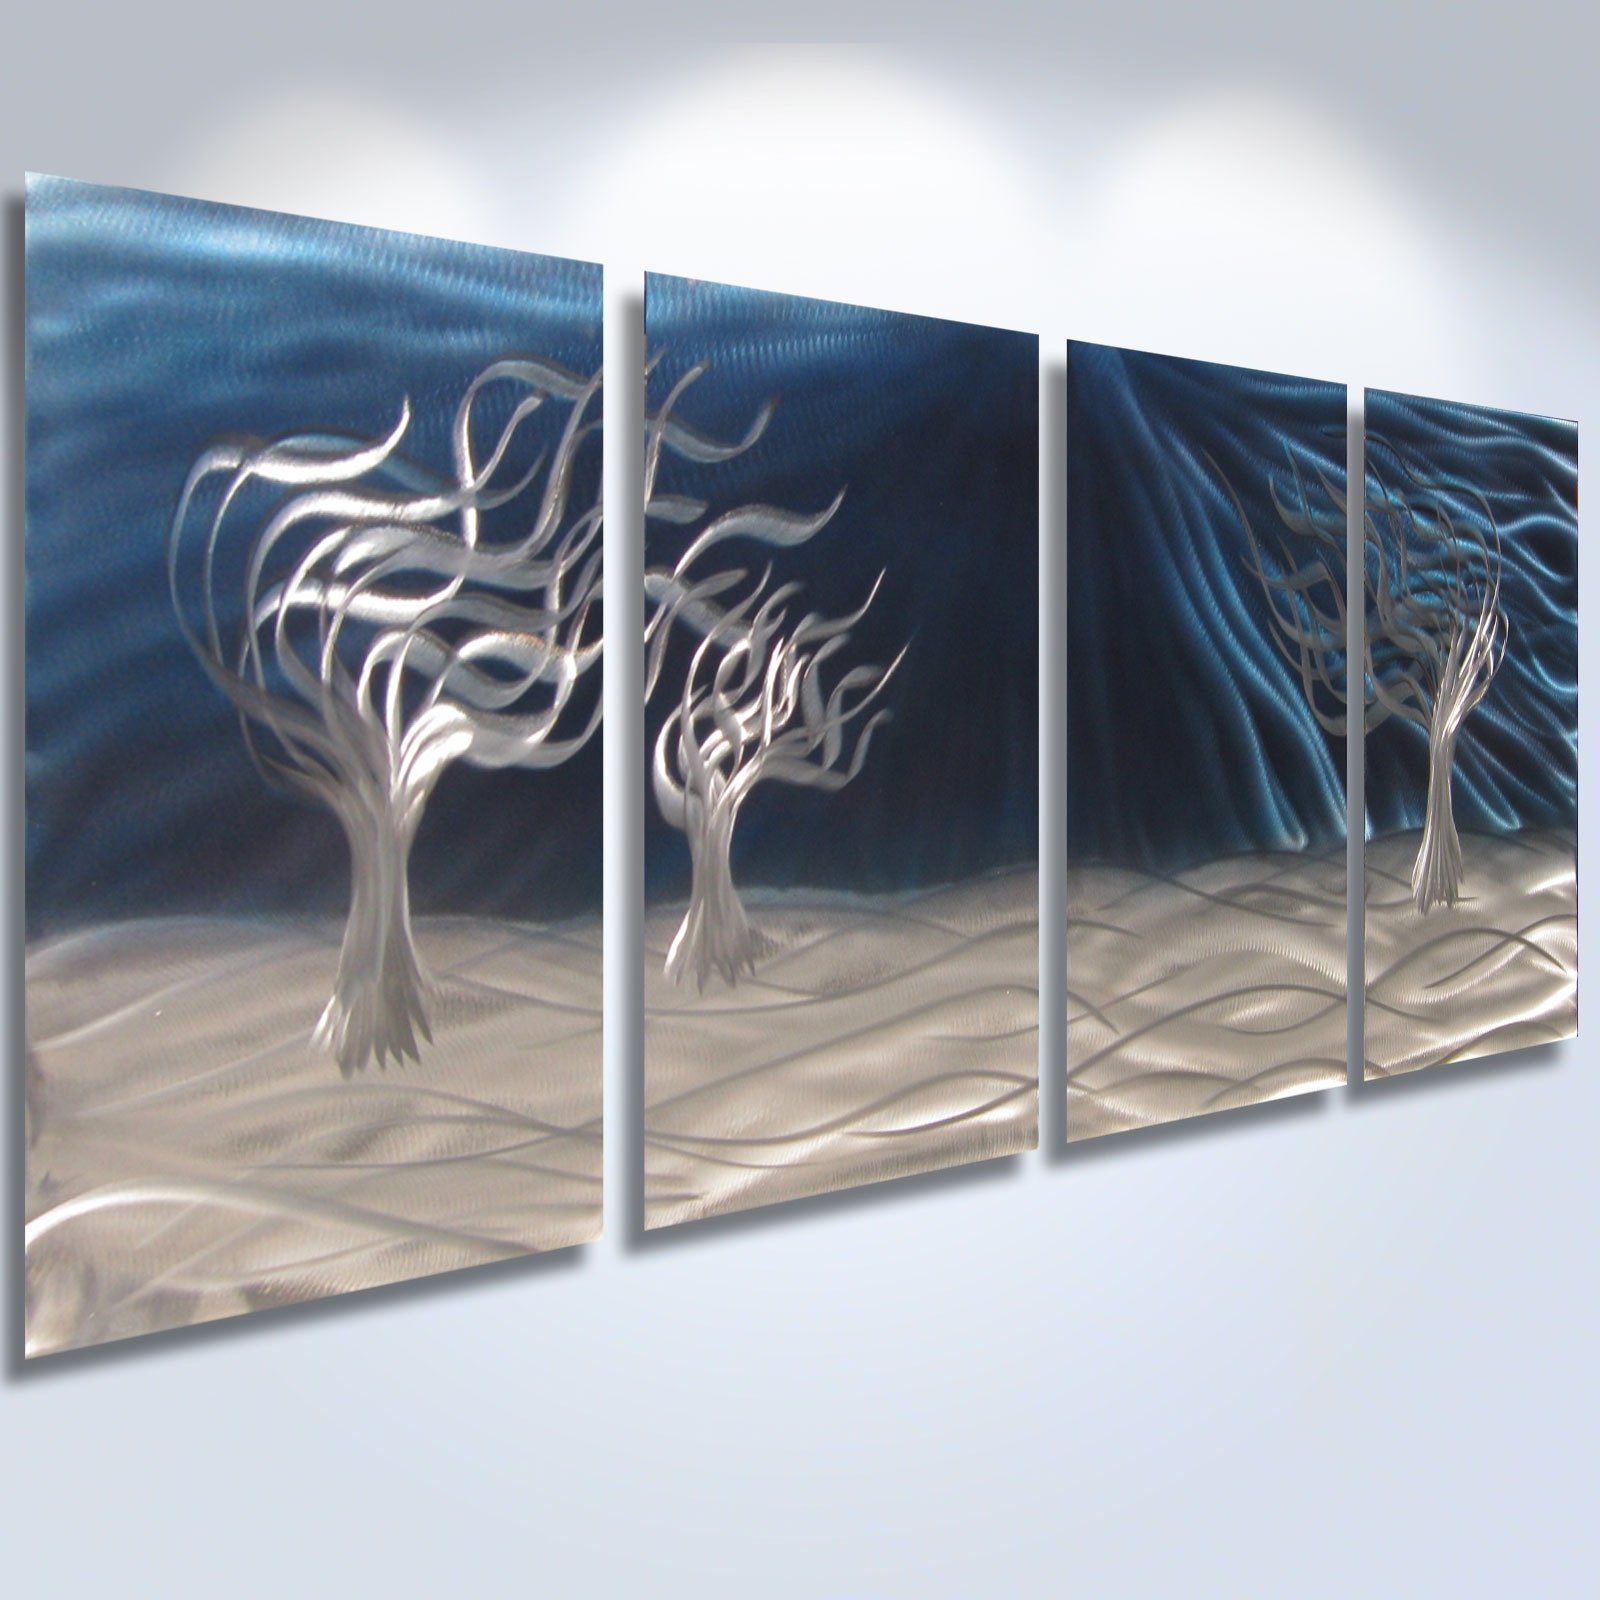 3 Trees Blue – Abstract Metal Wall Art Contemporary Modern Decor Regarding Well Known Abstract Metal Wall Art (View 4 of 15)